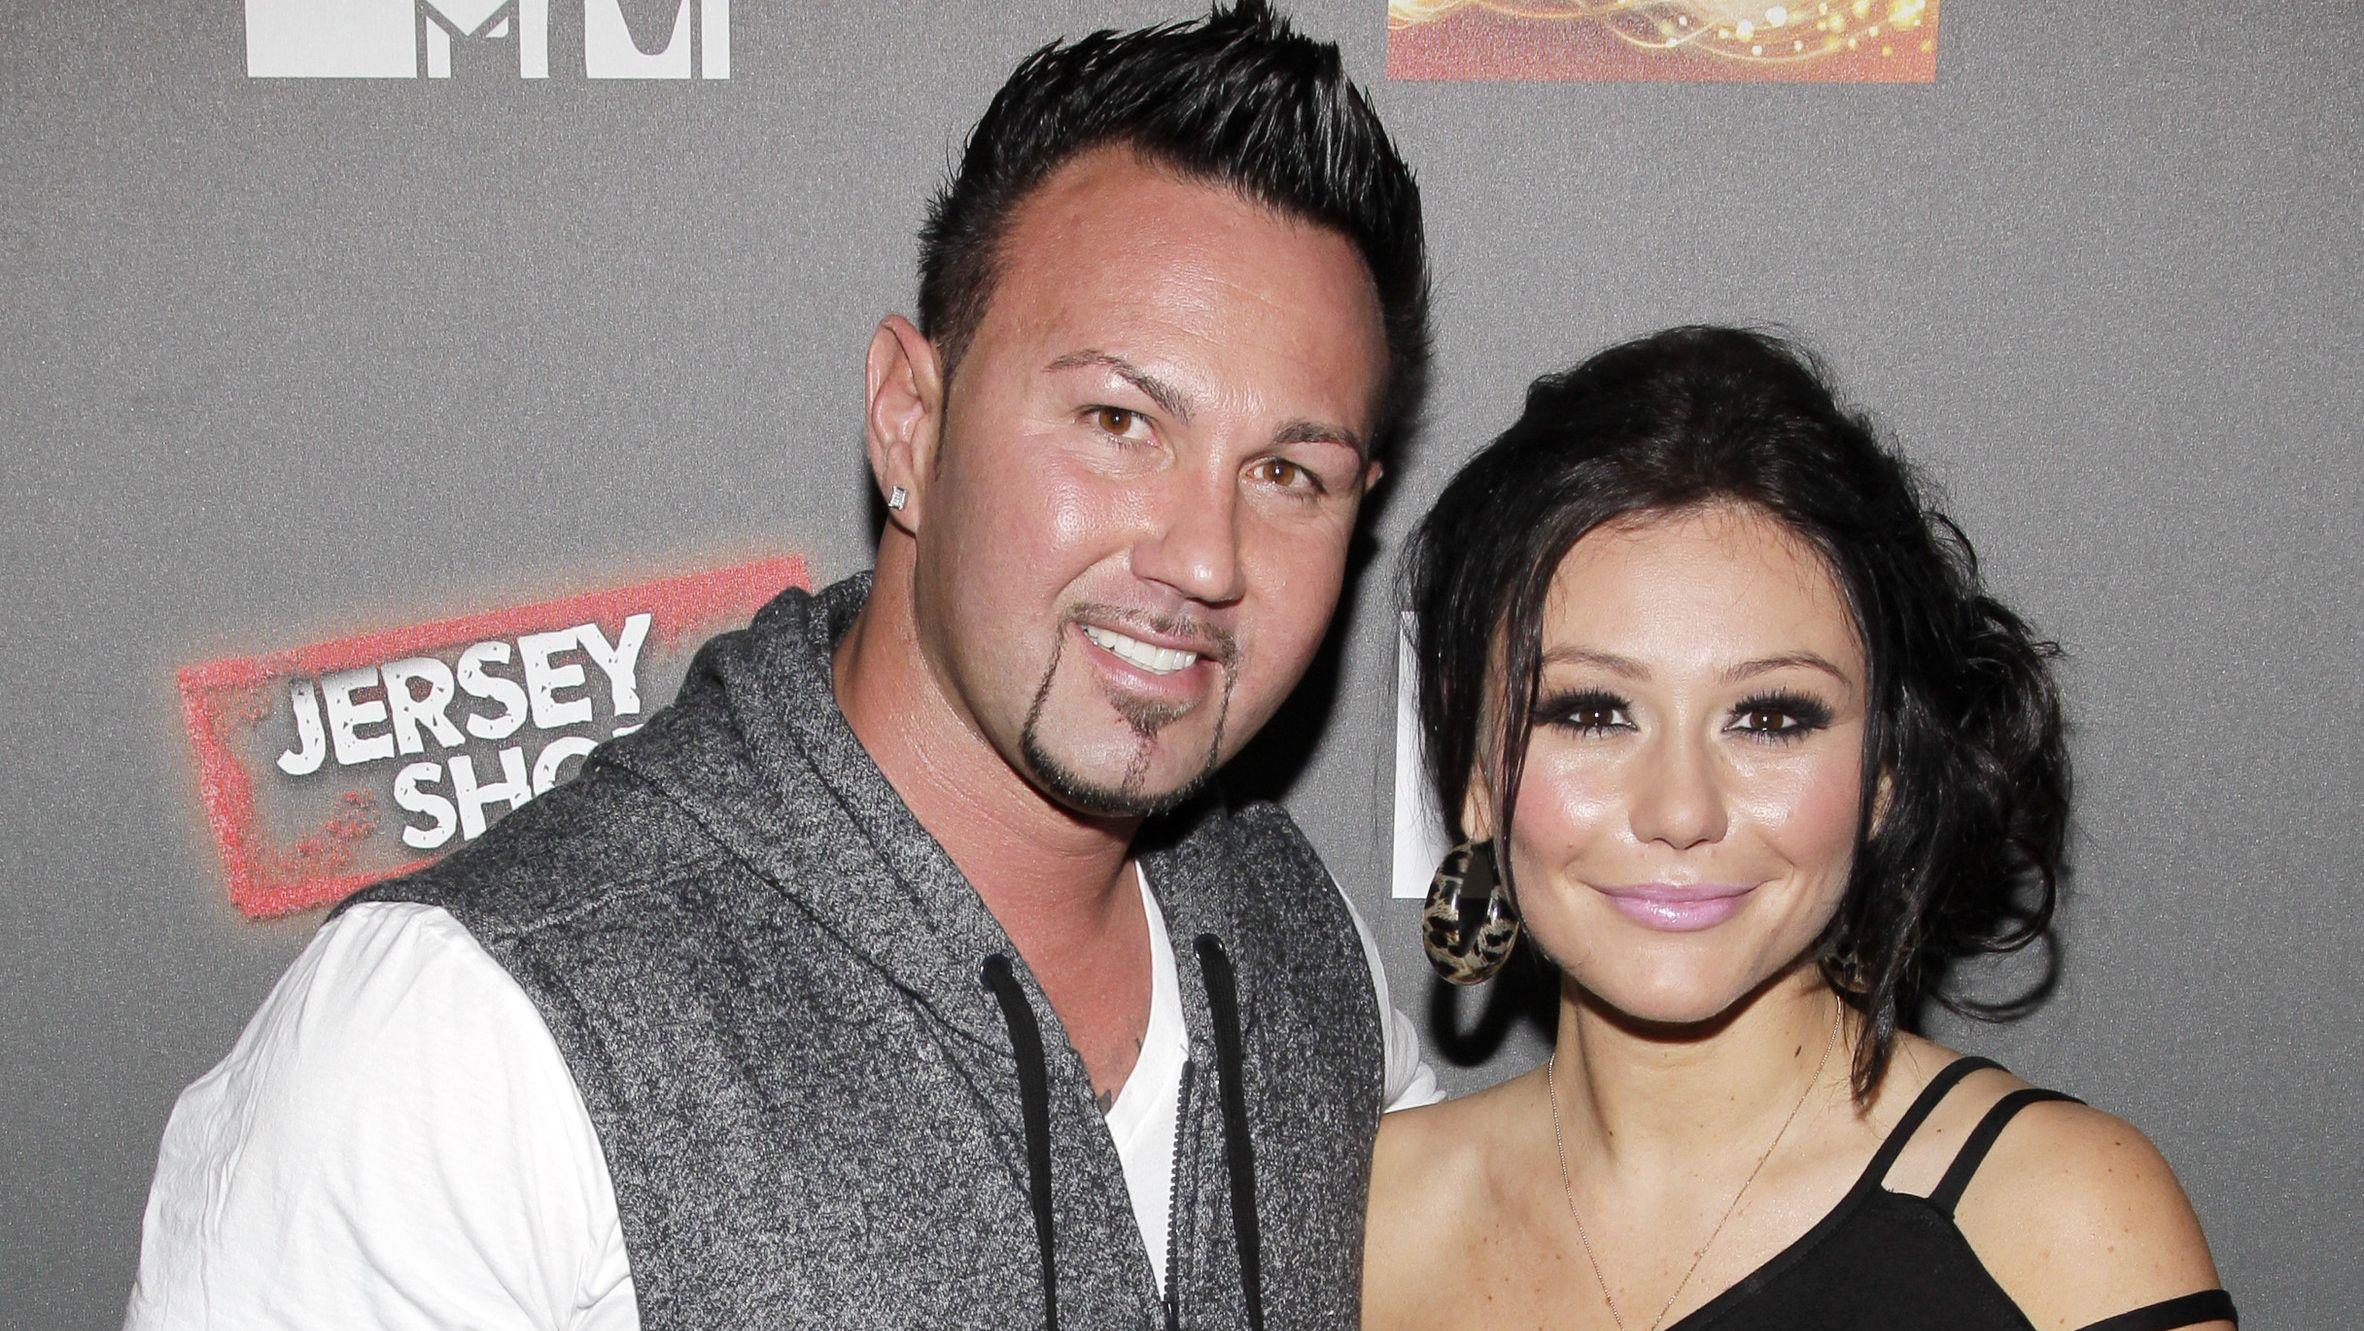 Angelina Jersey Shore Nude jersey shore' star jwoww says her 'biggest regret' was